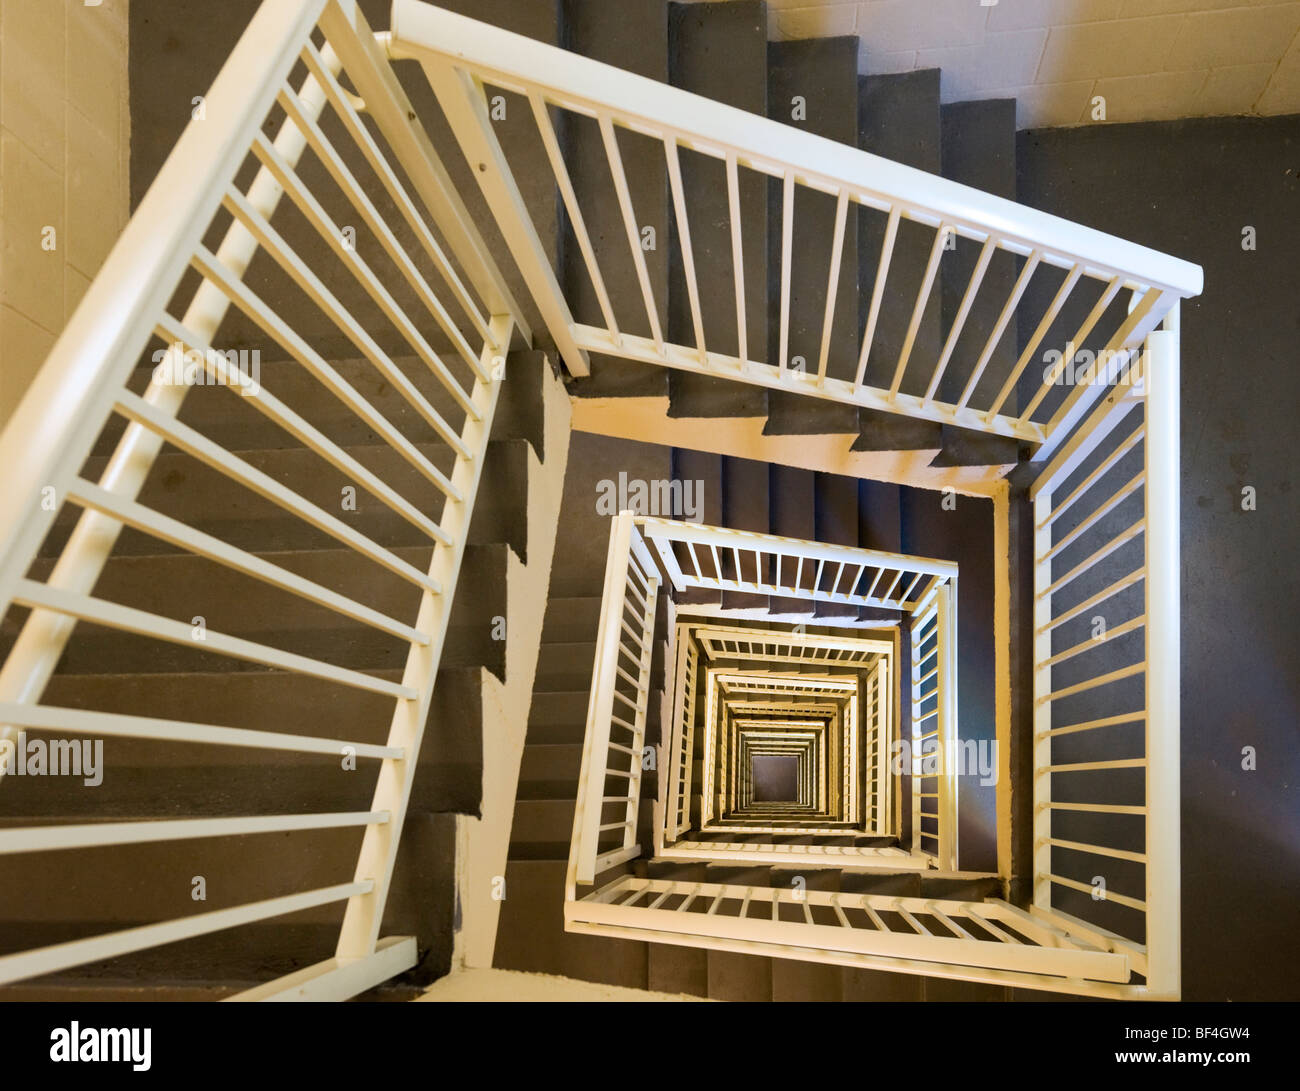 View looking down a stairwell from the top floor - Stock Image